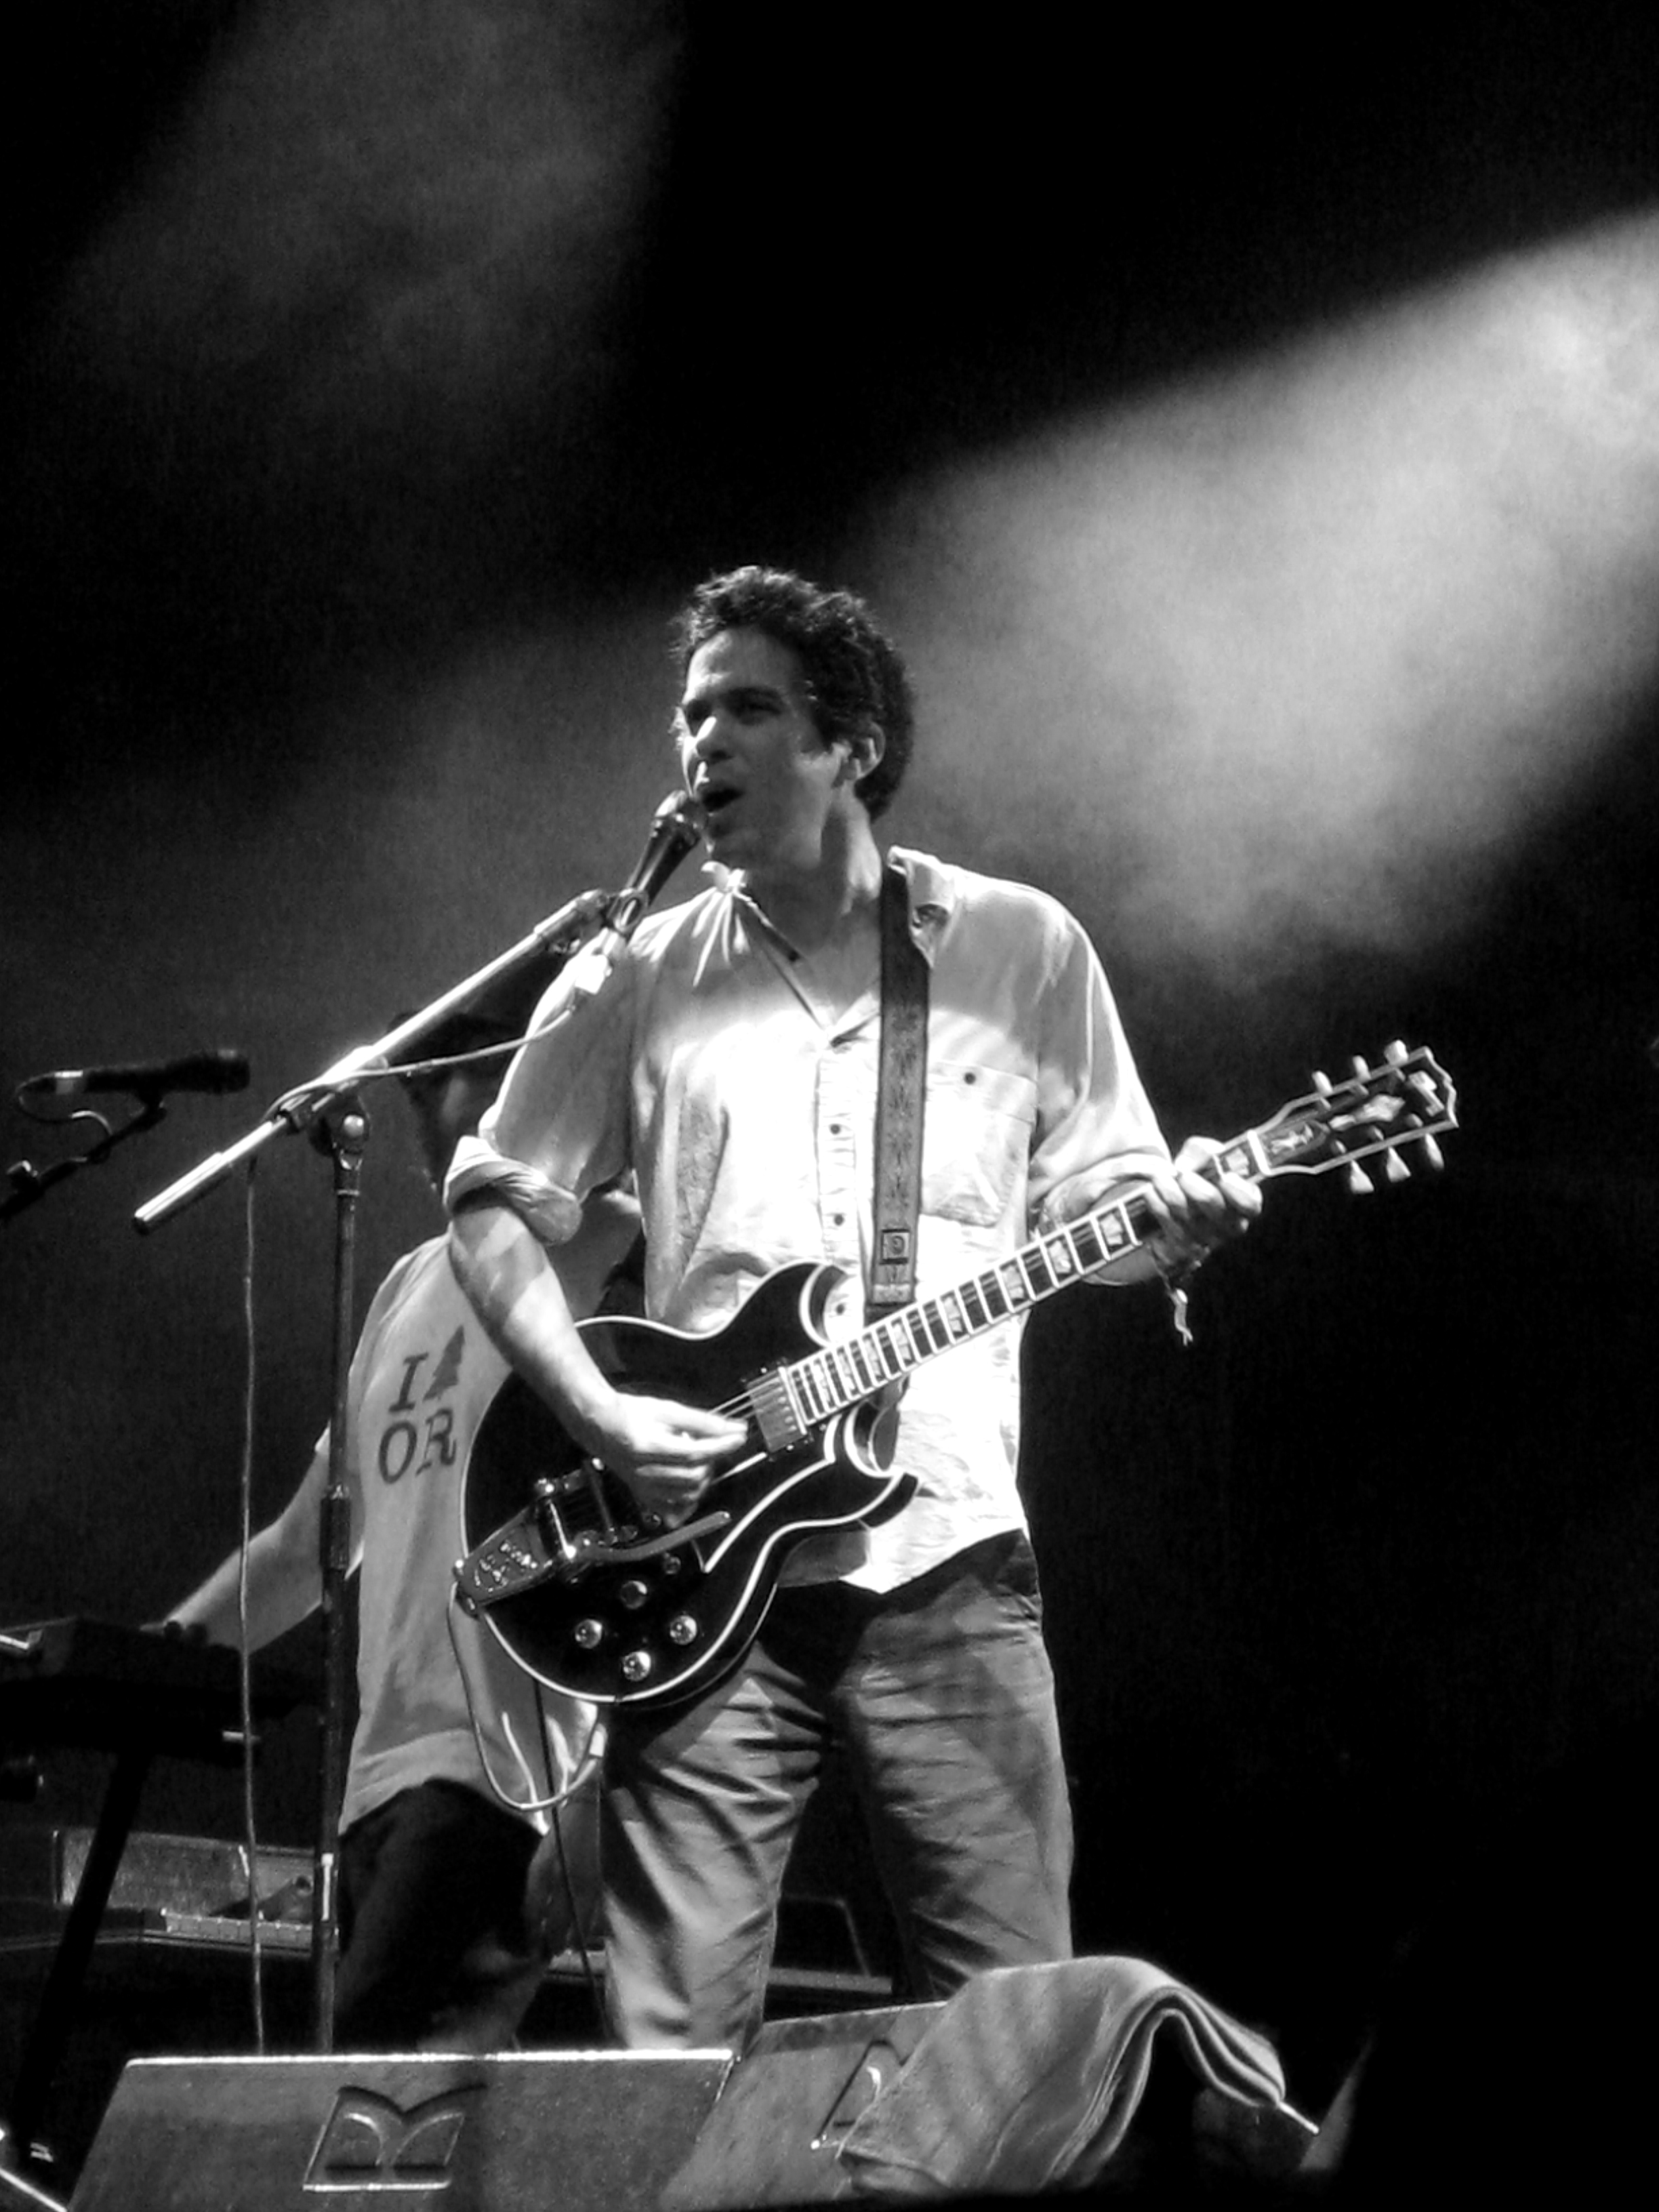 M. Ward performing live at the [[Glastonbury Festival]], 27 June 2009.